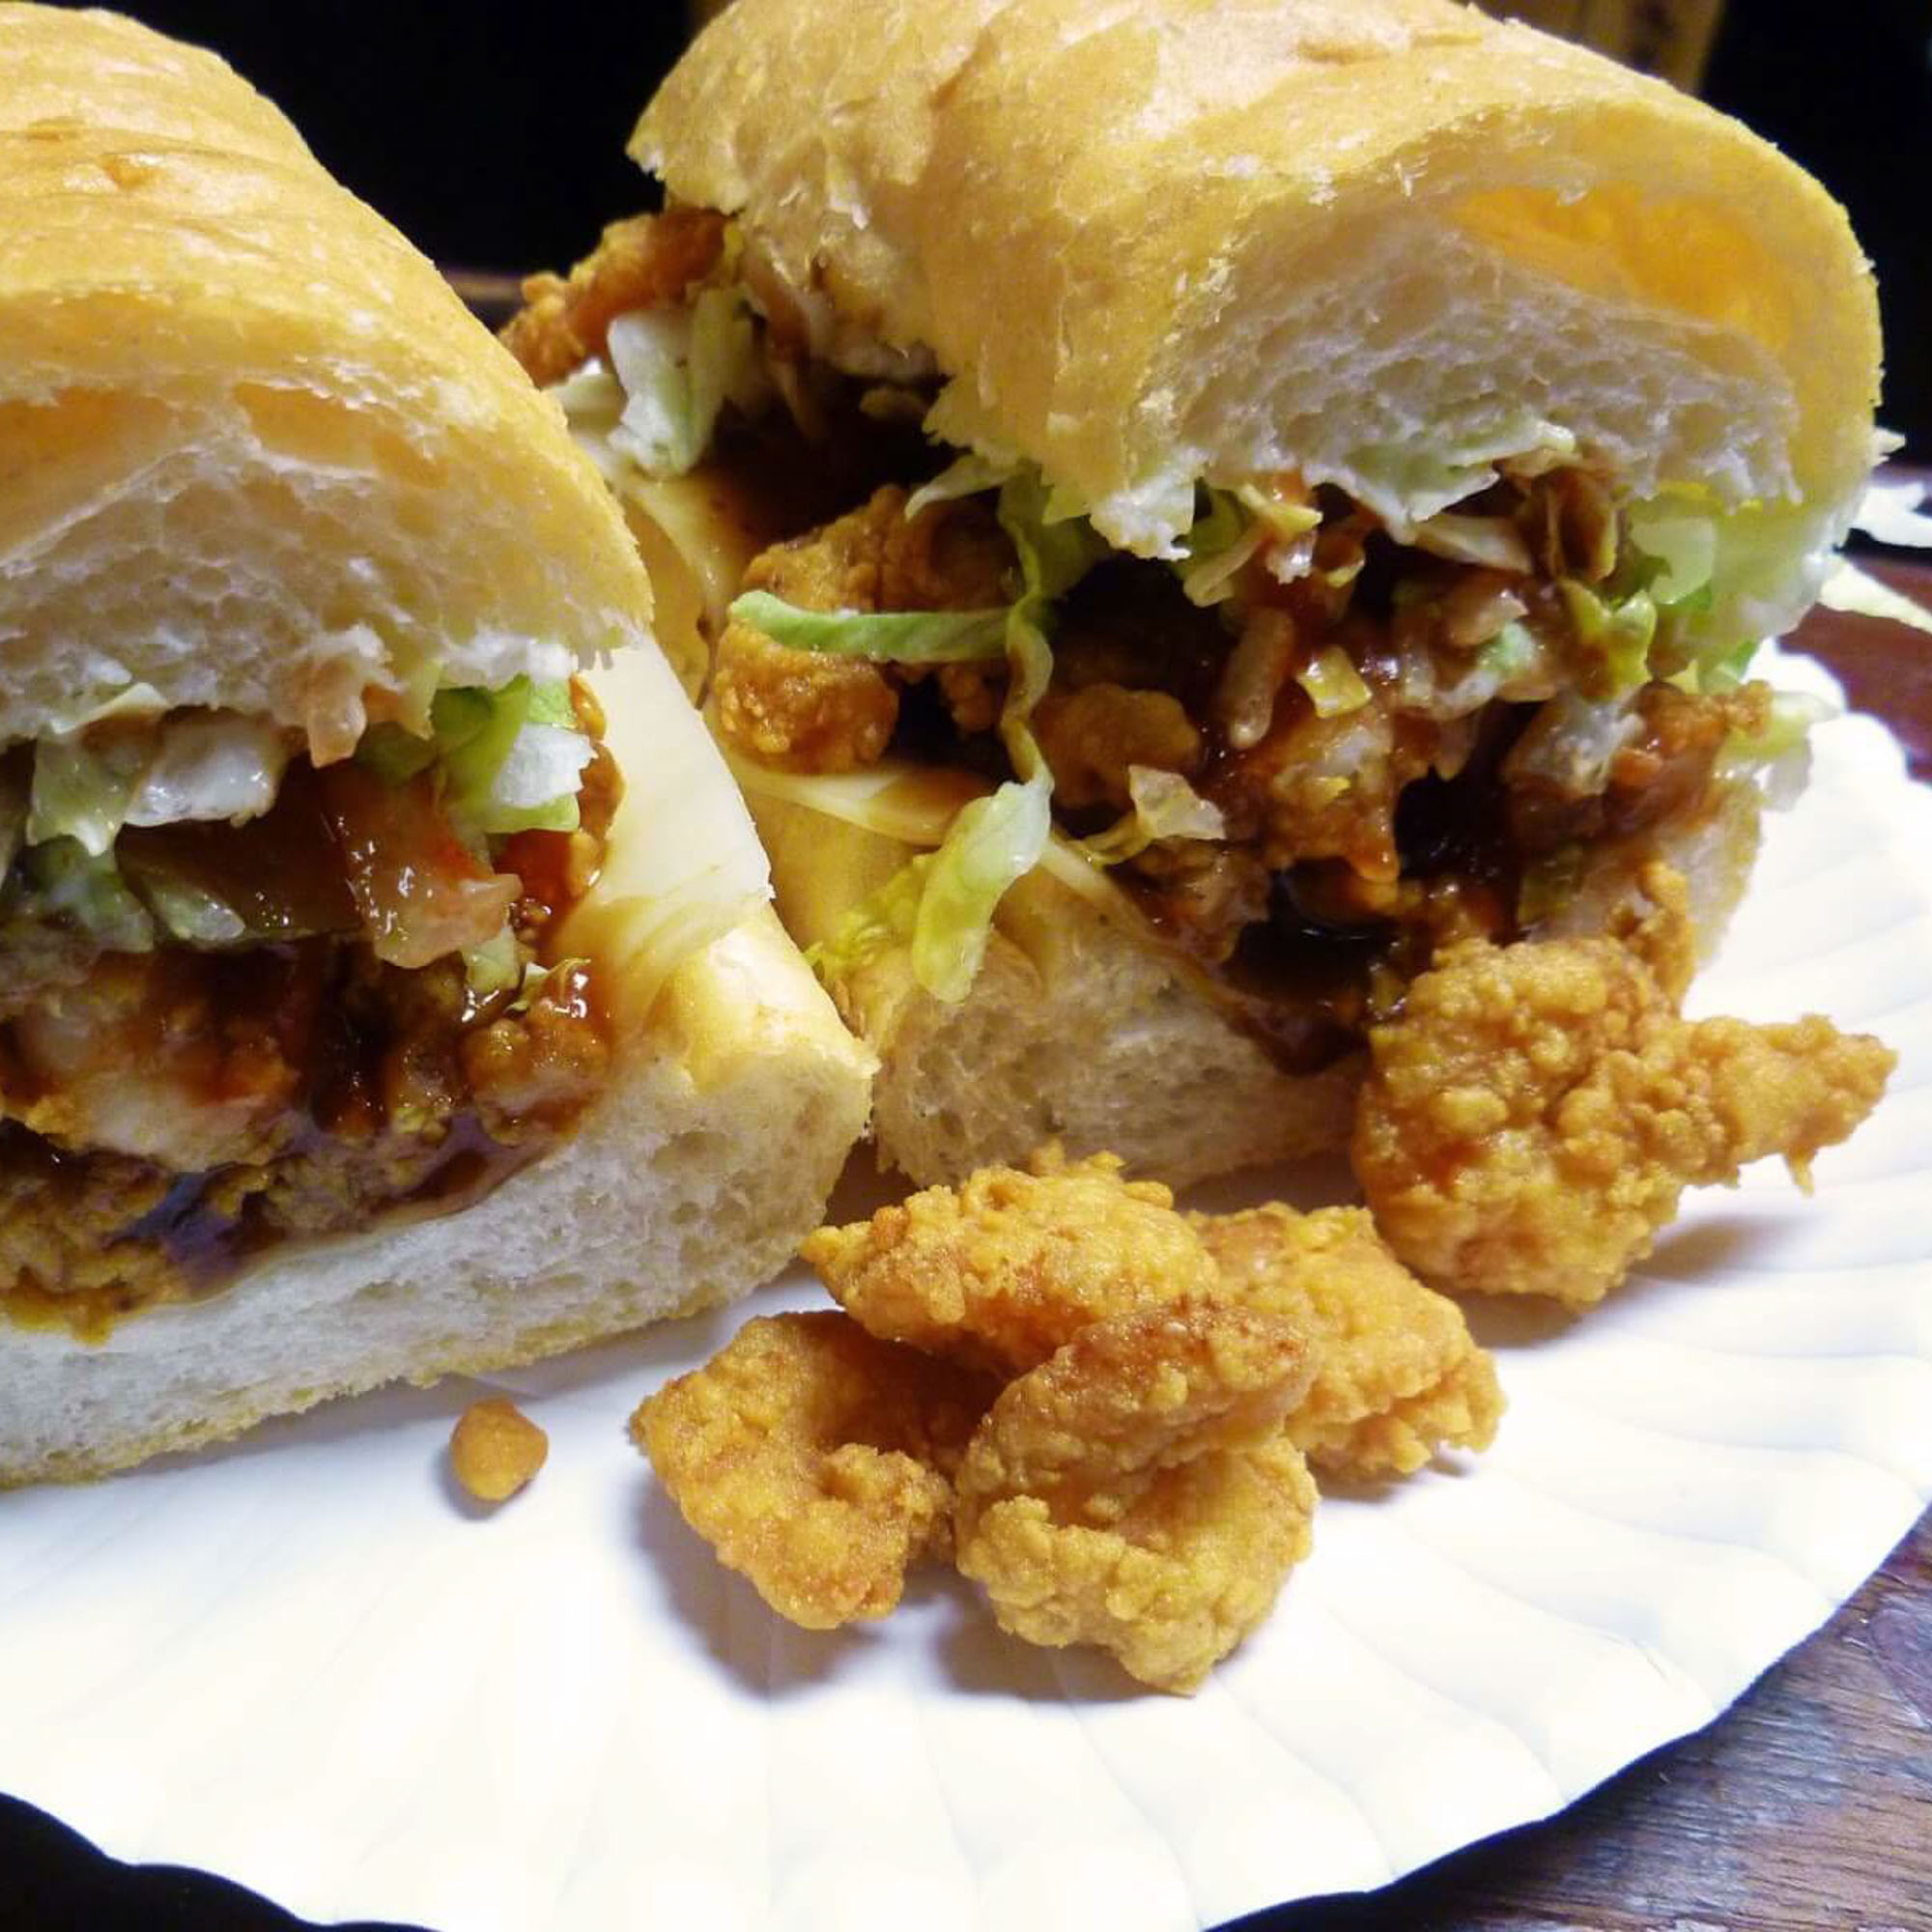 Po-boy at Domilise's in the Garden District in New Orleans